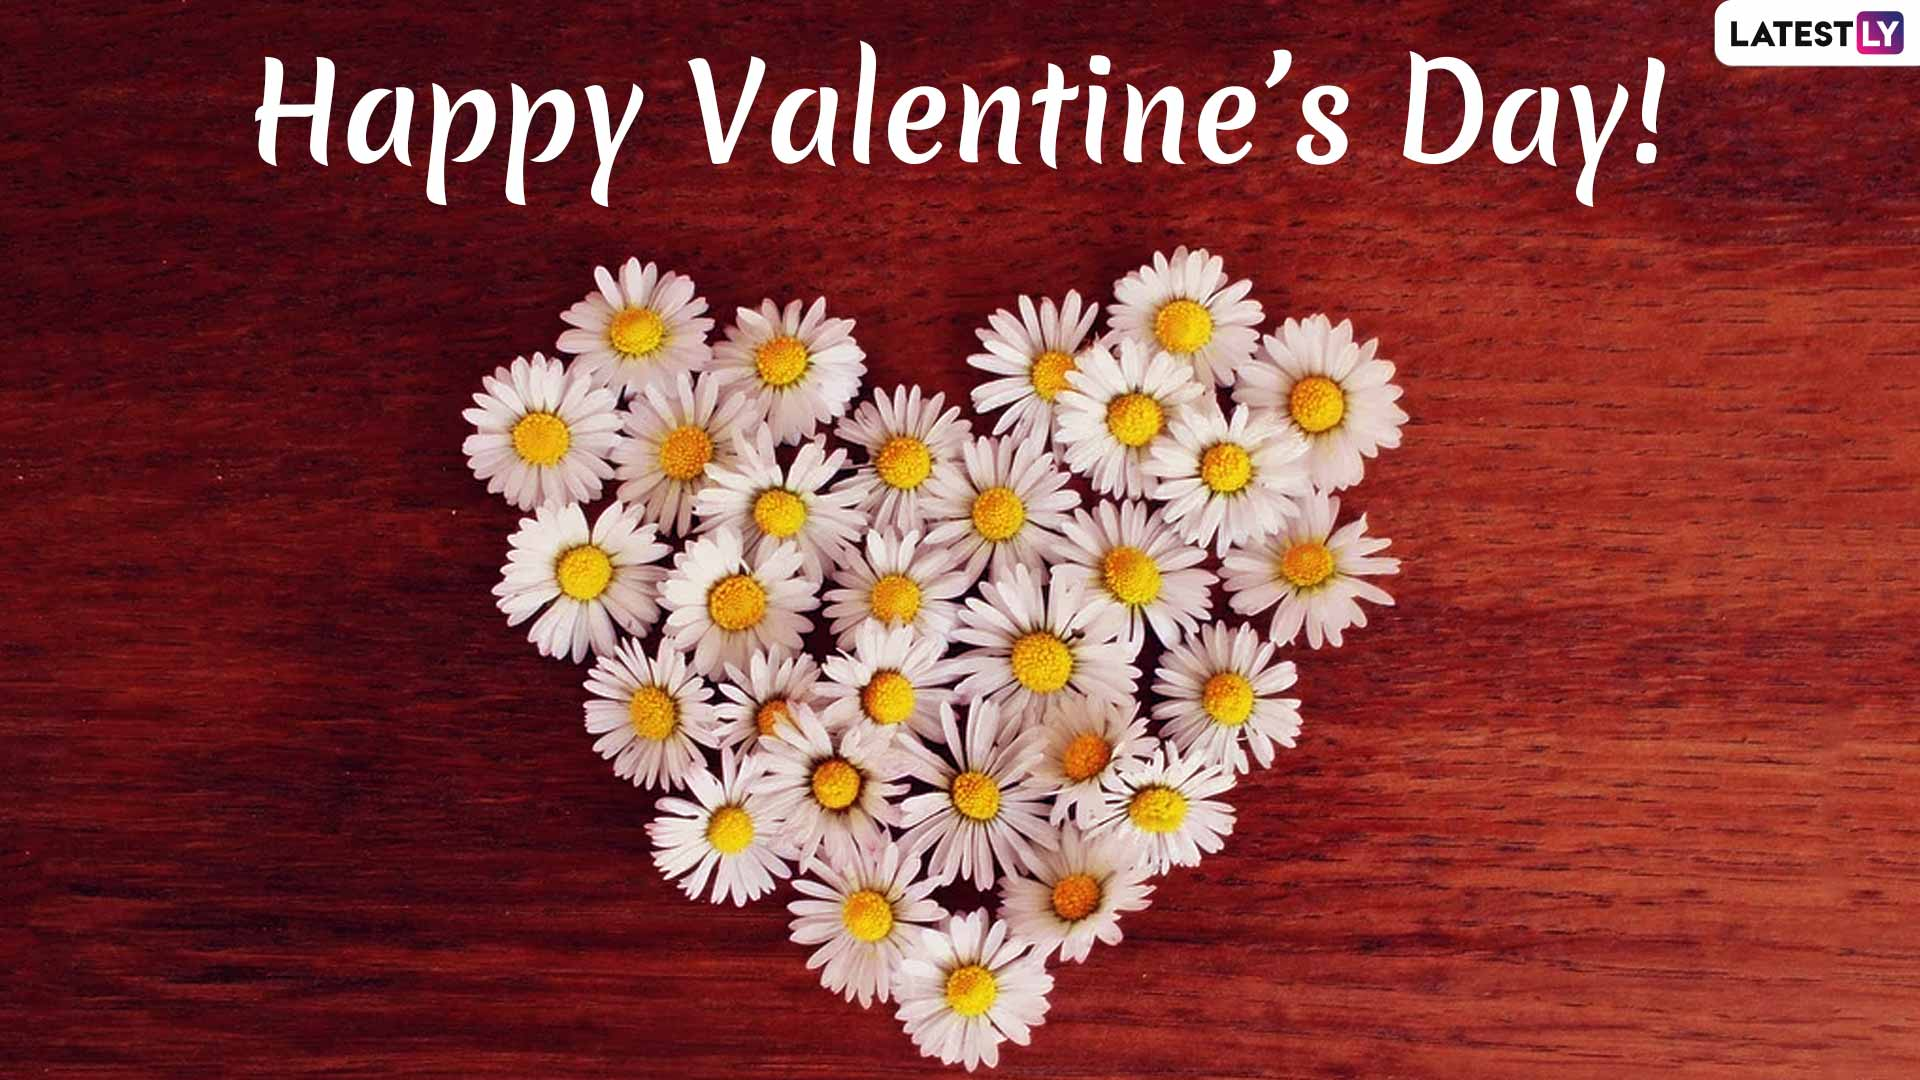 Happy Valentine's Day 2020 Wishes for Boyfriend: WhatsApp Stickers, Romantic Messages, Quotes, GIF Images, and Greetings to Send to Your Beau